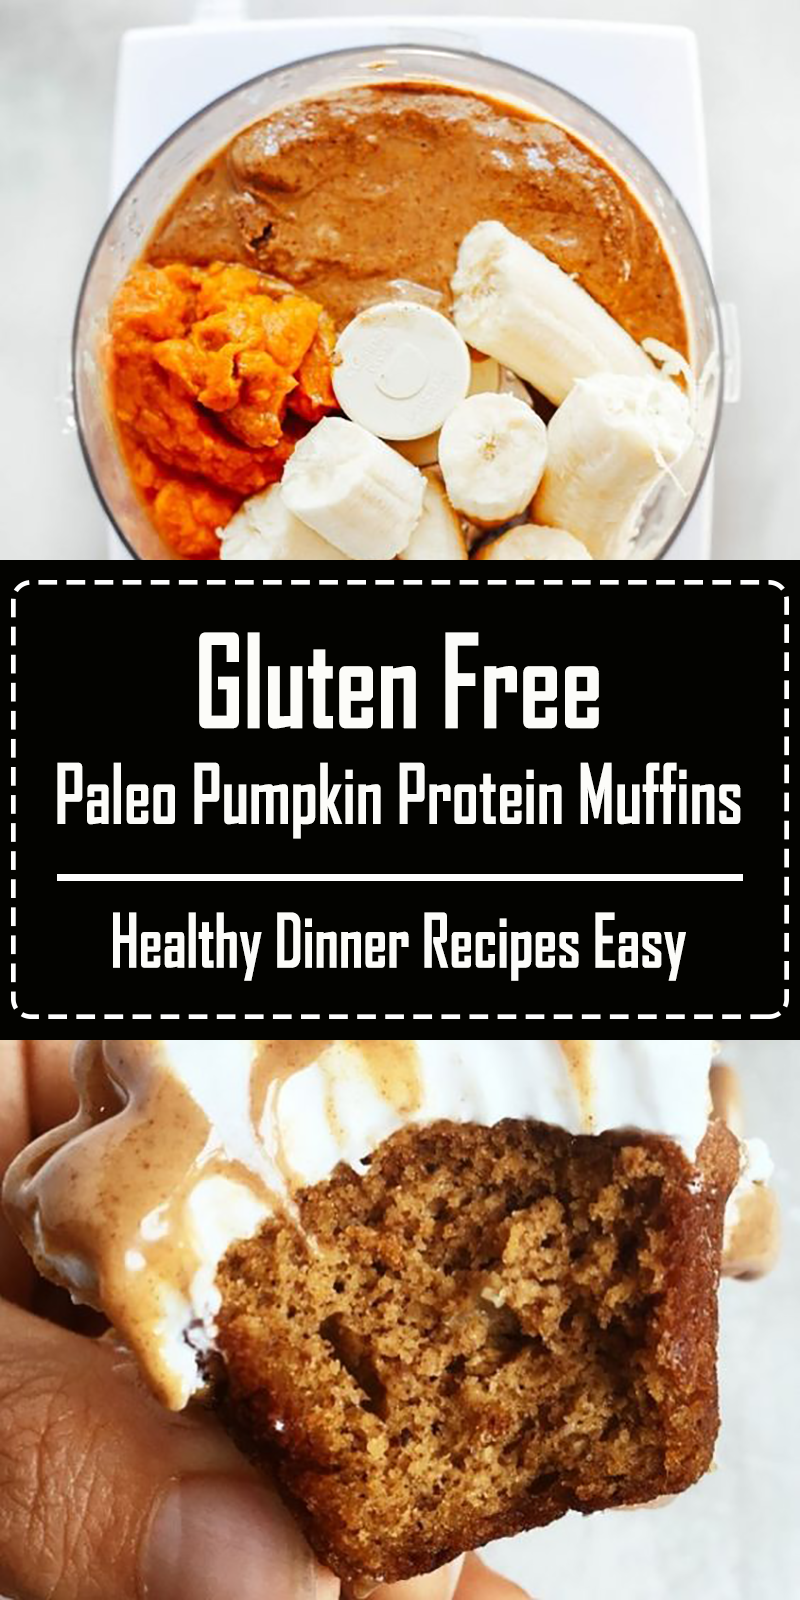 Gluten Free Paleo Pumpkin Protein Muffins - 5 Minute, 71 calorie paleo pumpkin spice protein muffins. Flourless pumpkin banana muffins make for easy meal prep- perfect for cozy fall breakfasts or post workout fuel! Naturally sweetened, with added health benefits and protein from collagen peptides. #paleo #pumpkinspice #baking